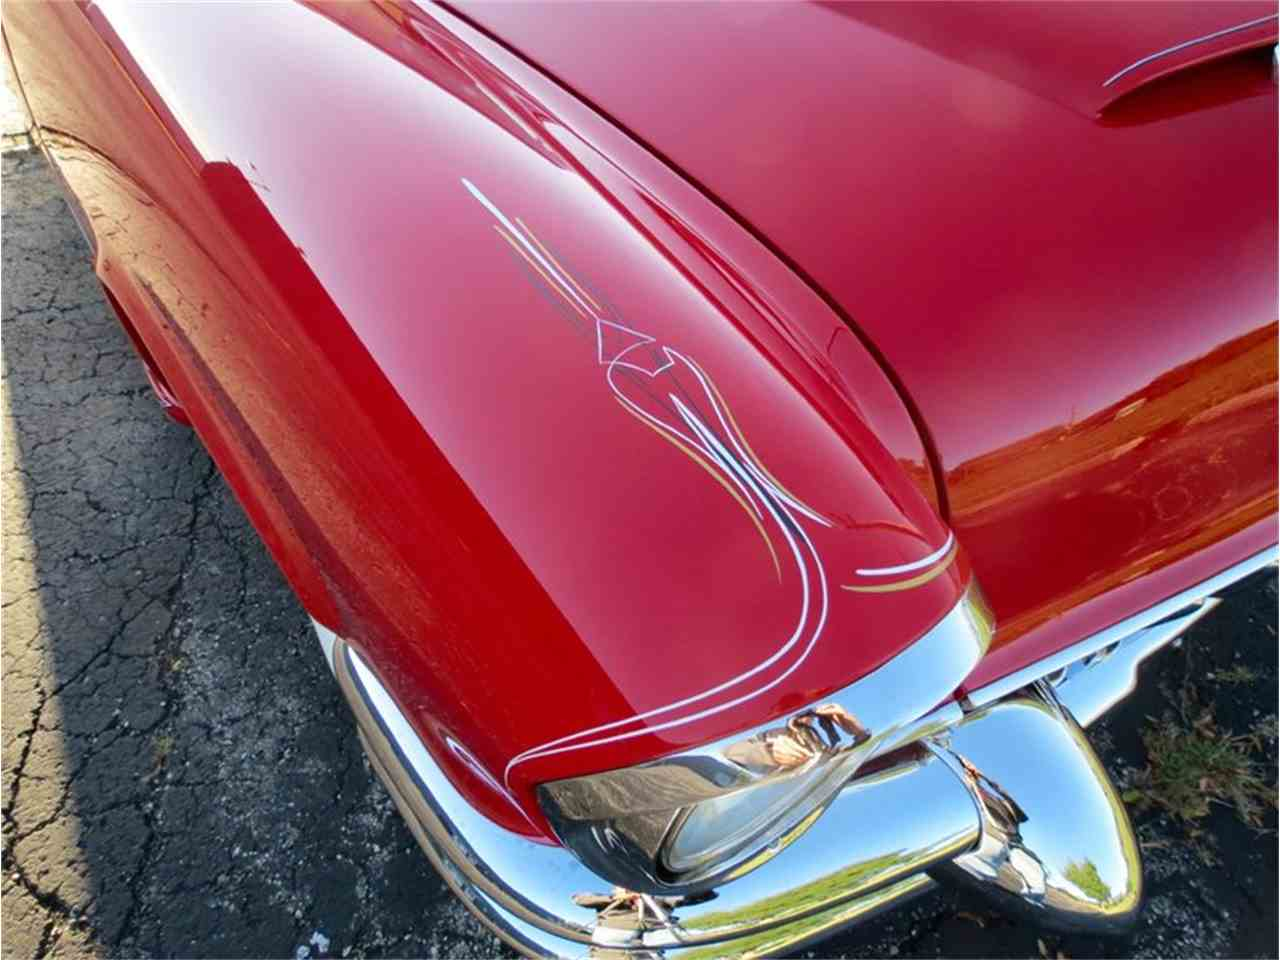 Large Picture of Classic 1953 Mercury Monterey located in Dayton Ohio - $65,000.00 - FHXC